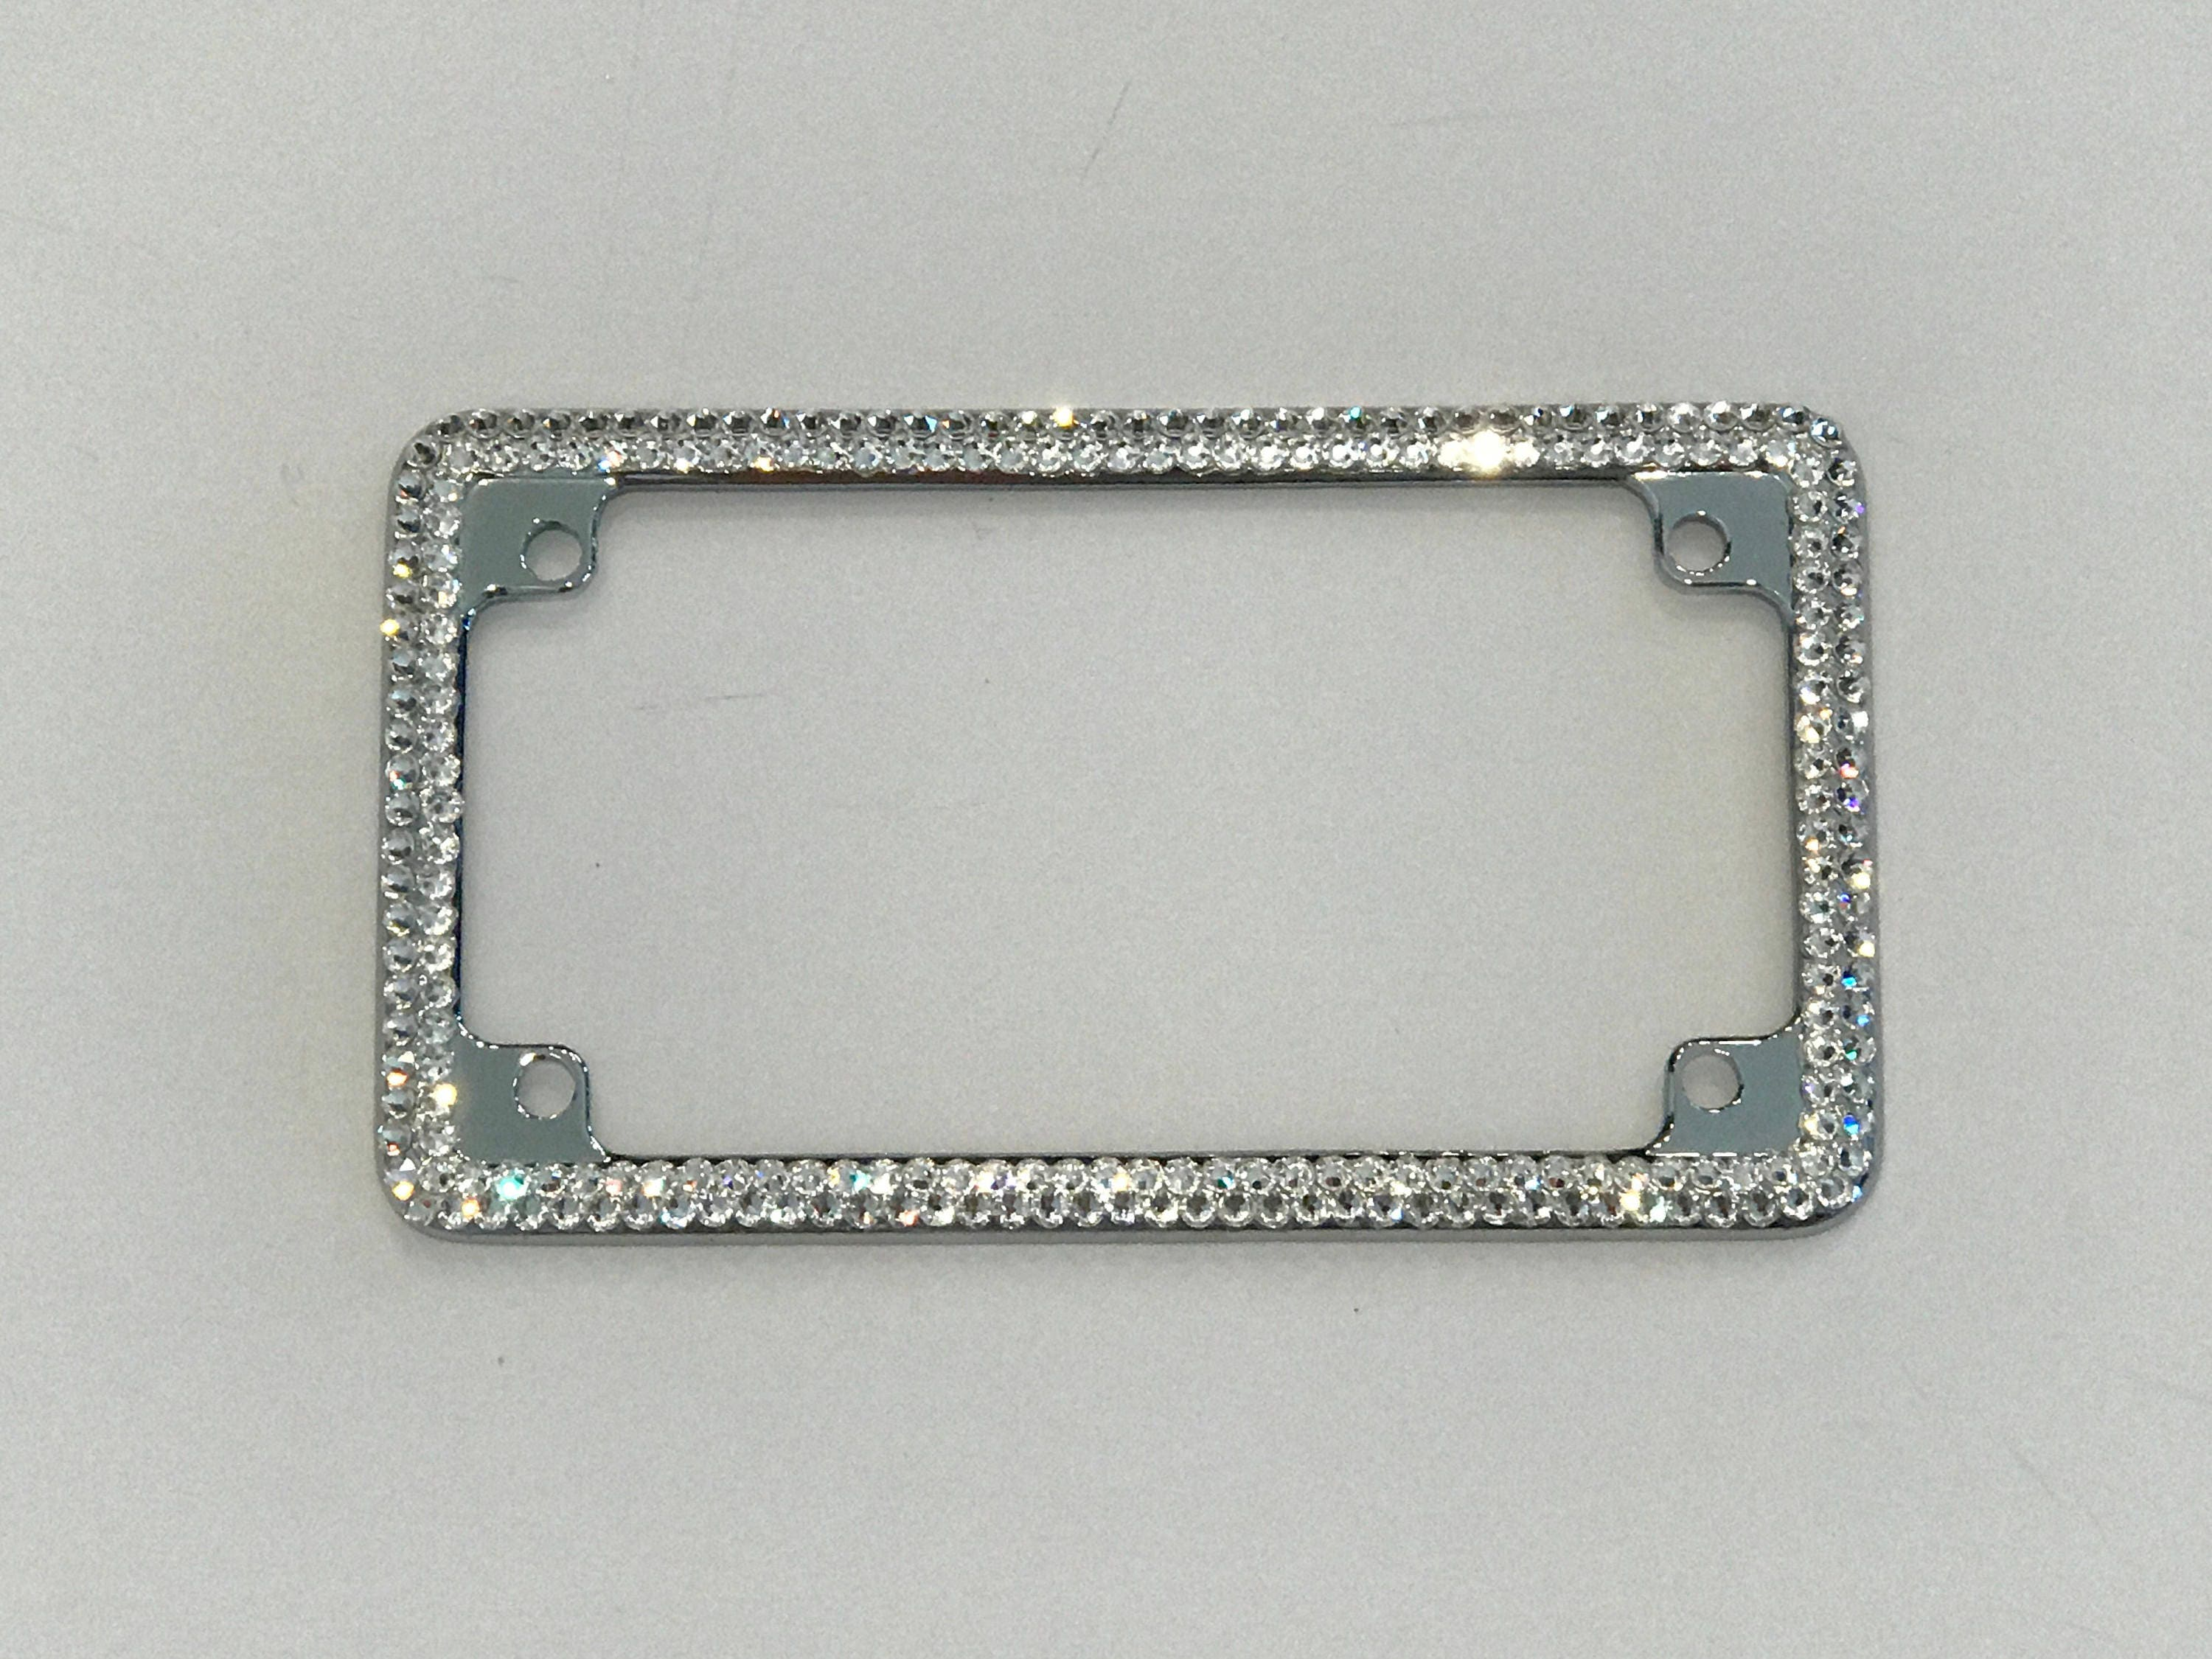 Swarovski Bling Crystal Motorcycle License Plate Frame with or